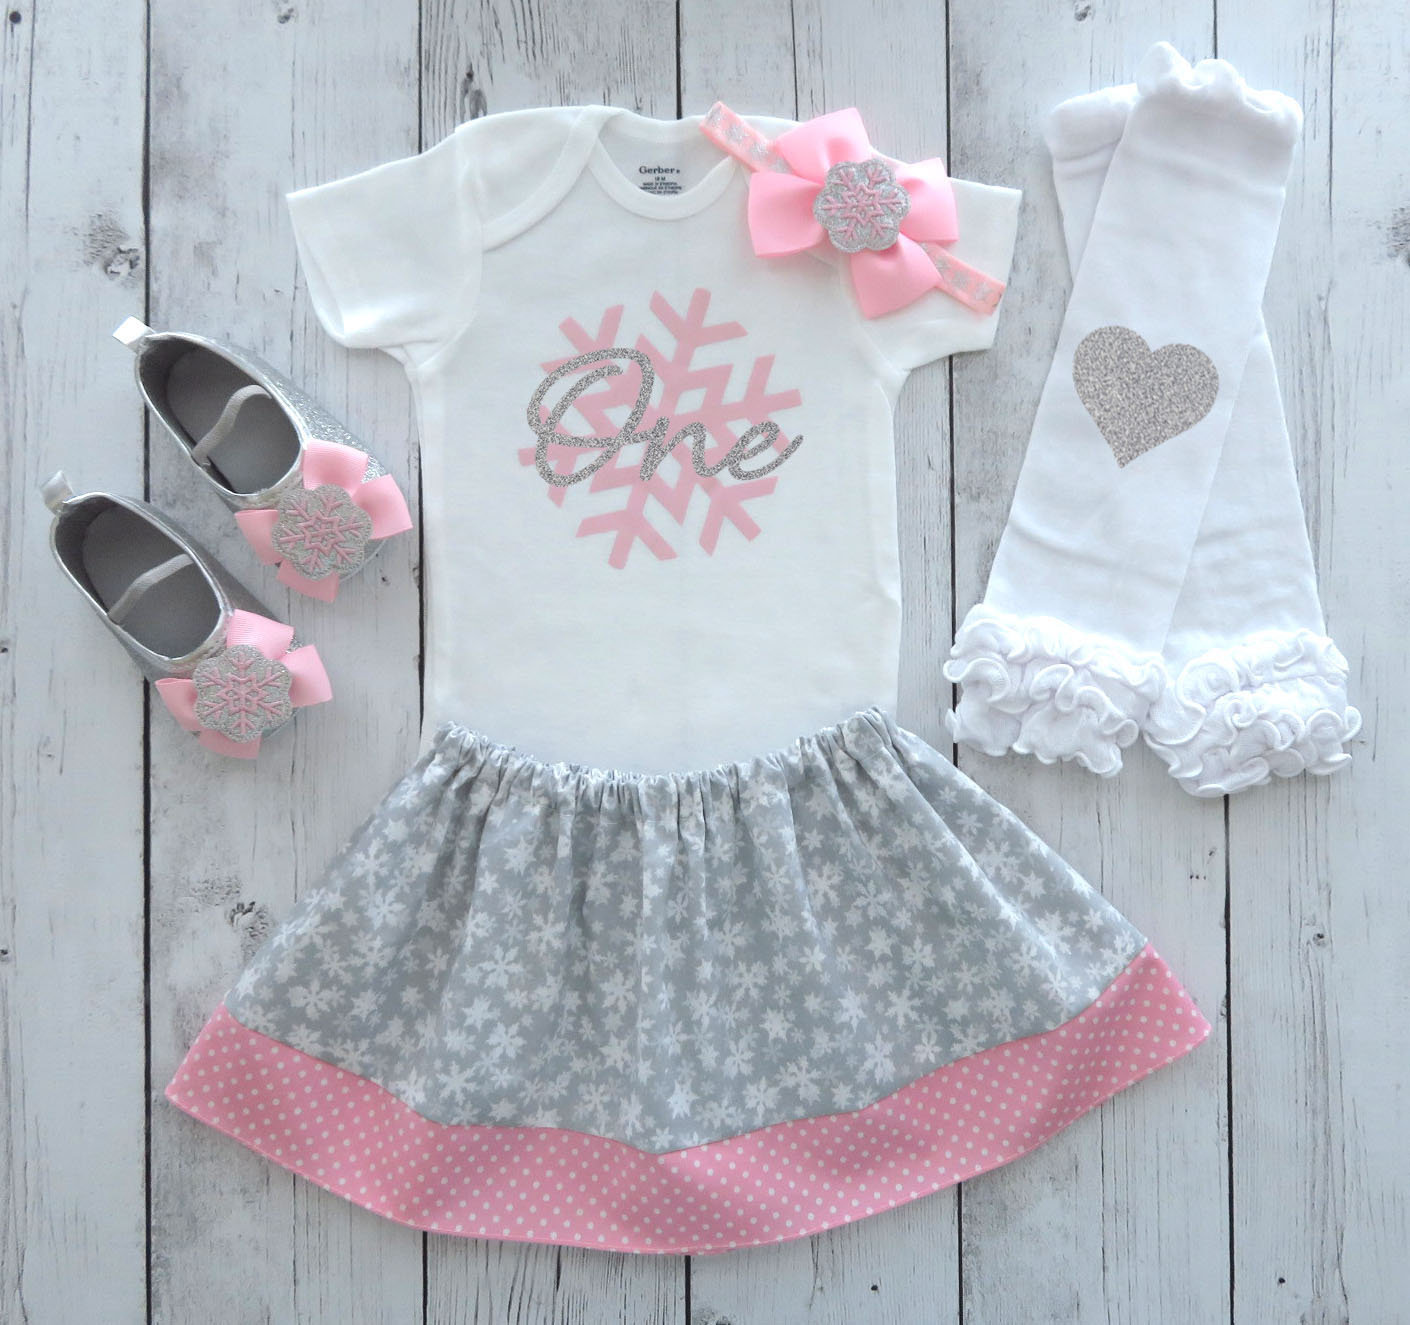 Winter ONEderland First Birthday Outfit in pink and gray/silver - girl 1st birthday outfit, winter birthday, snow much fun to be one girl